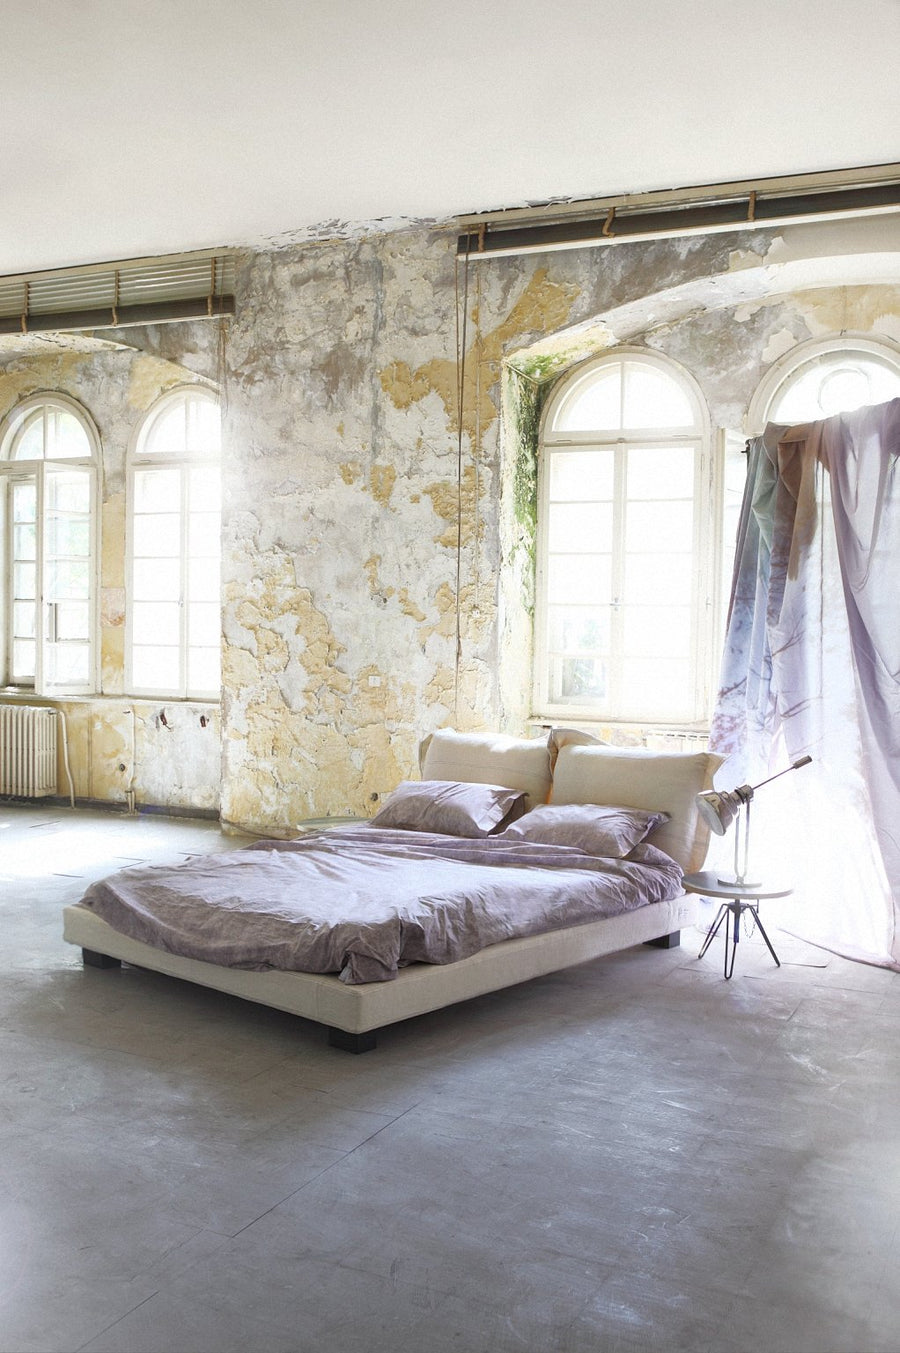 NEBULA Bed by Moroso for Diesel Living - DUPLEX DESIGN